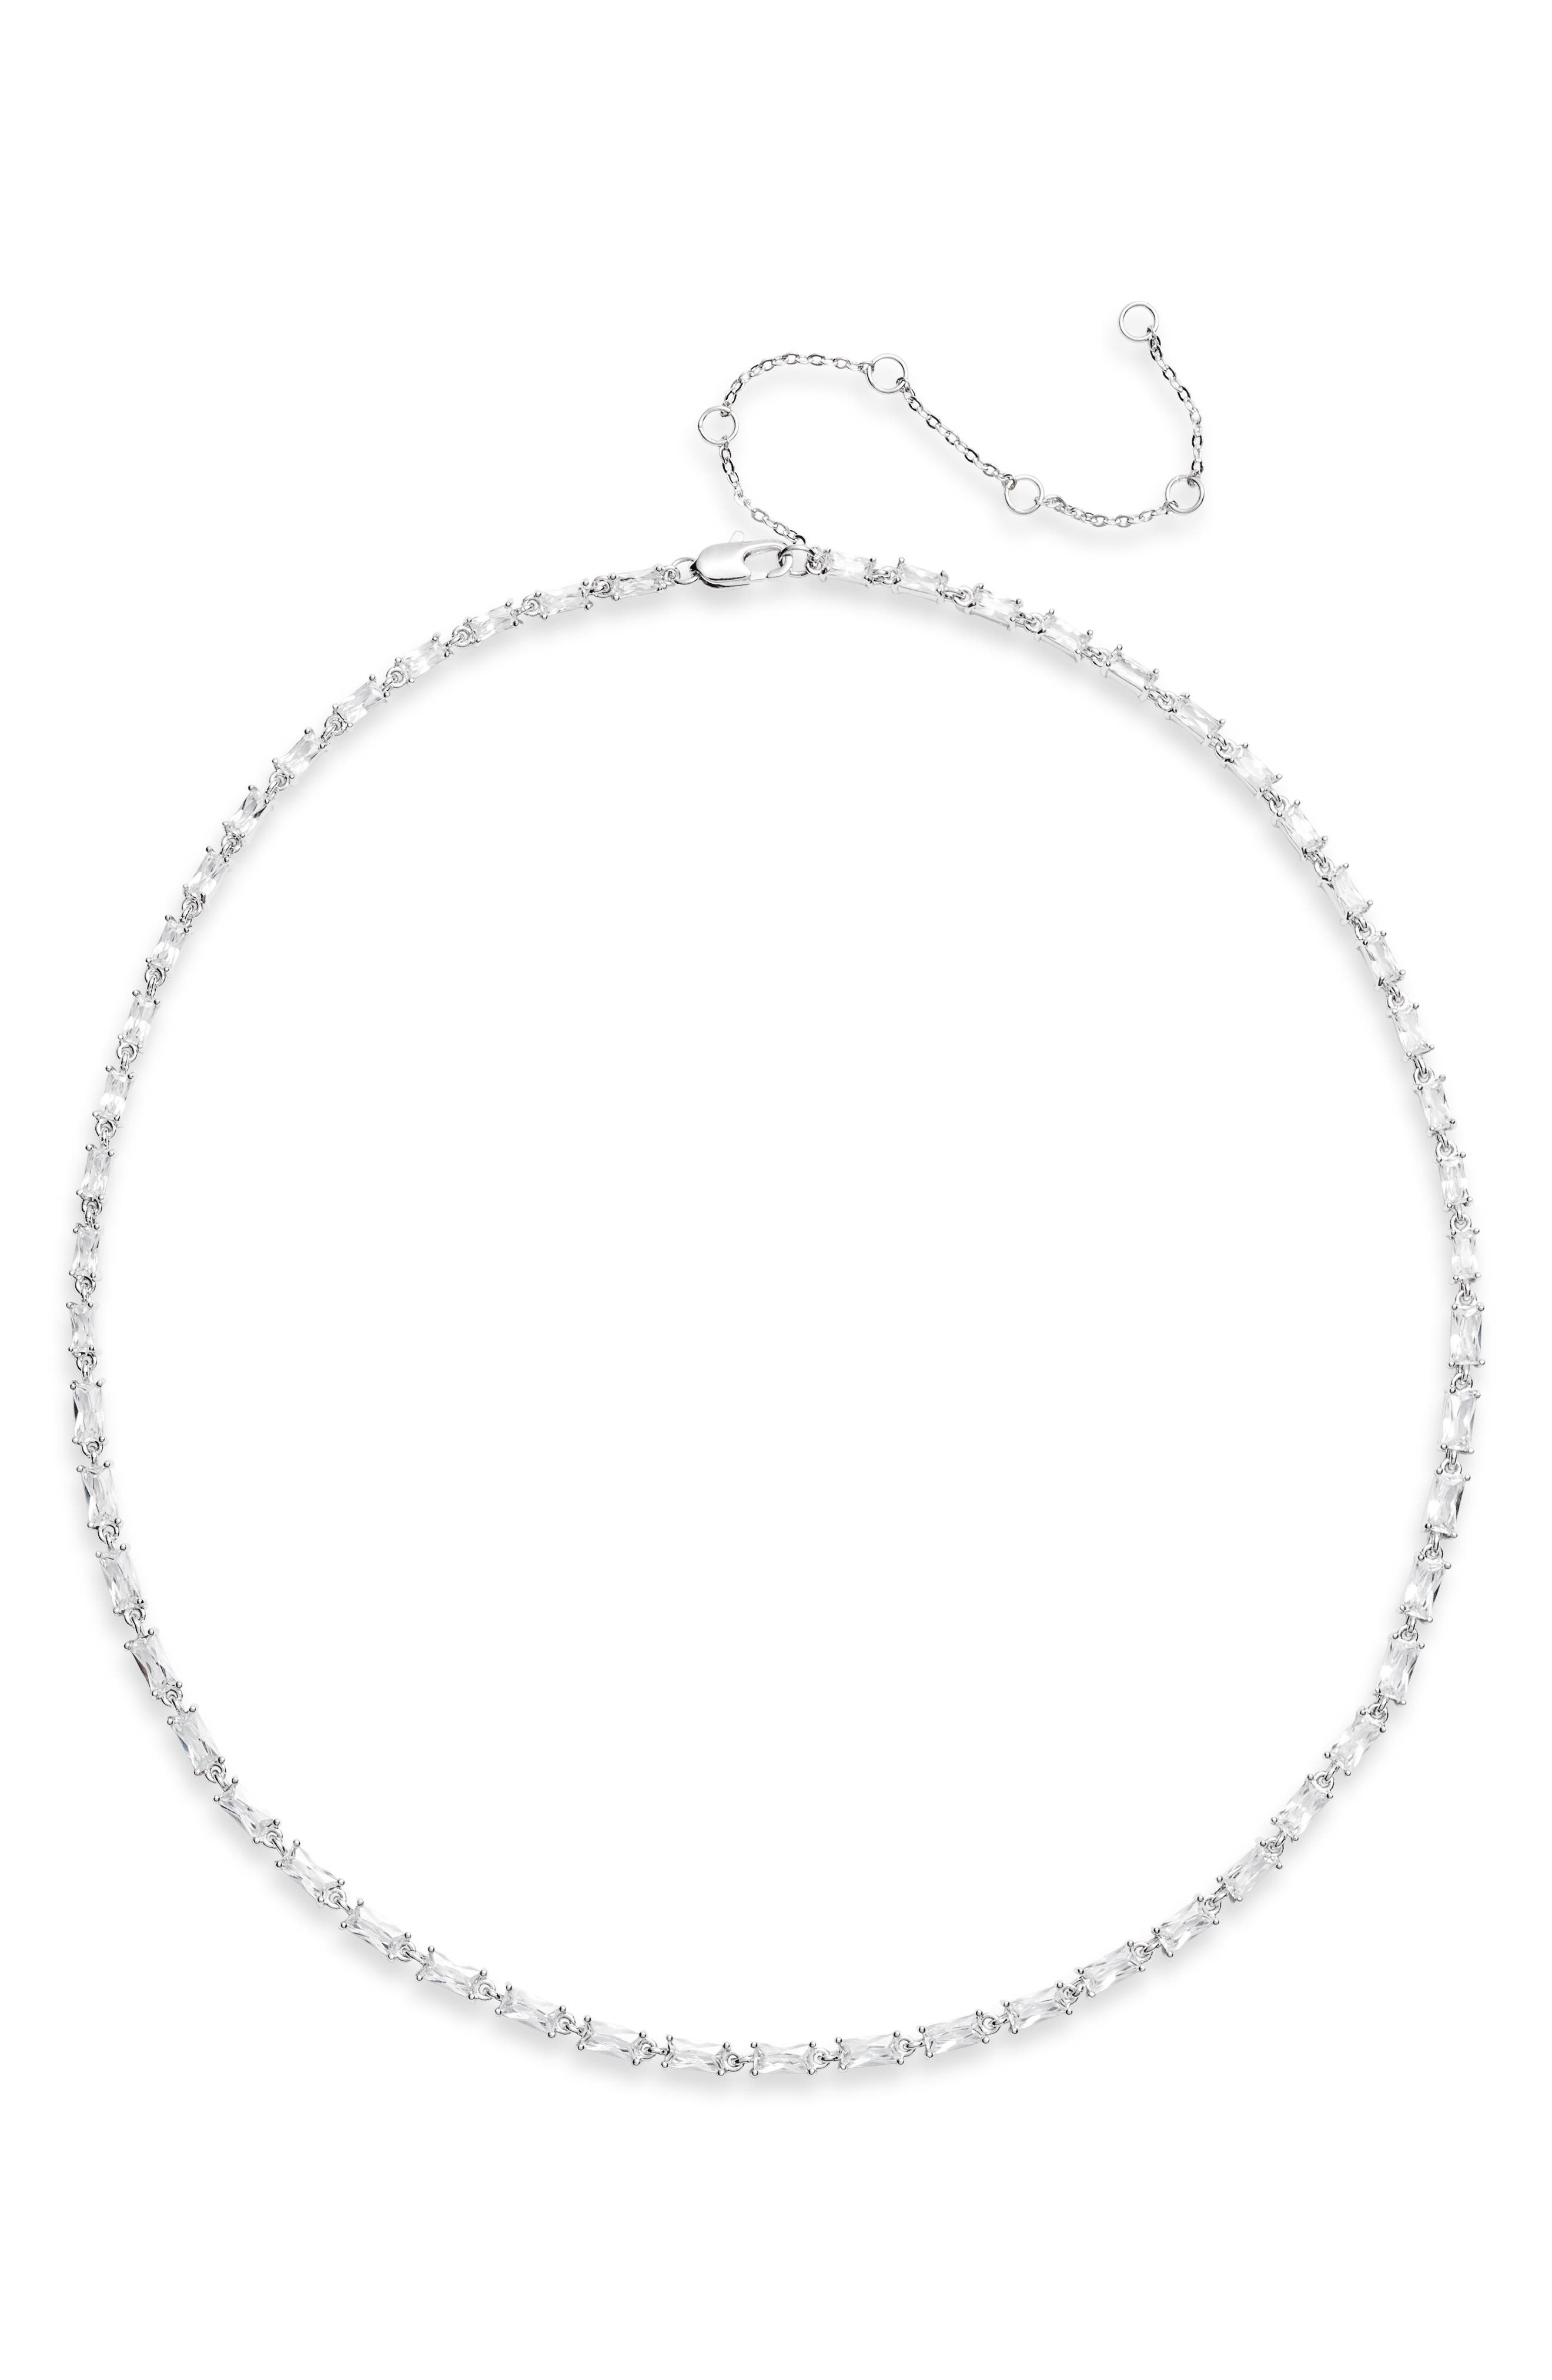 Nordstrom Women's Jewelry